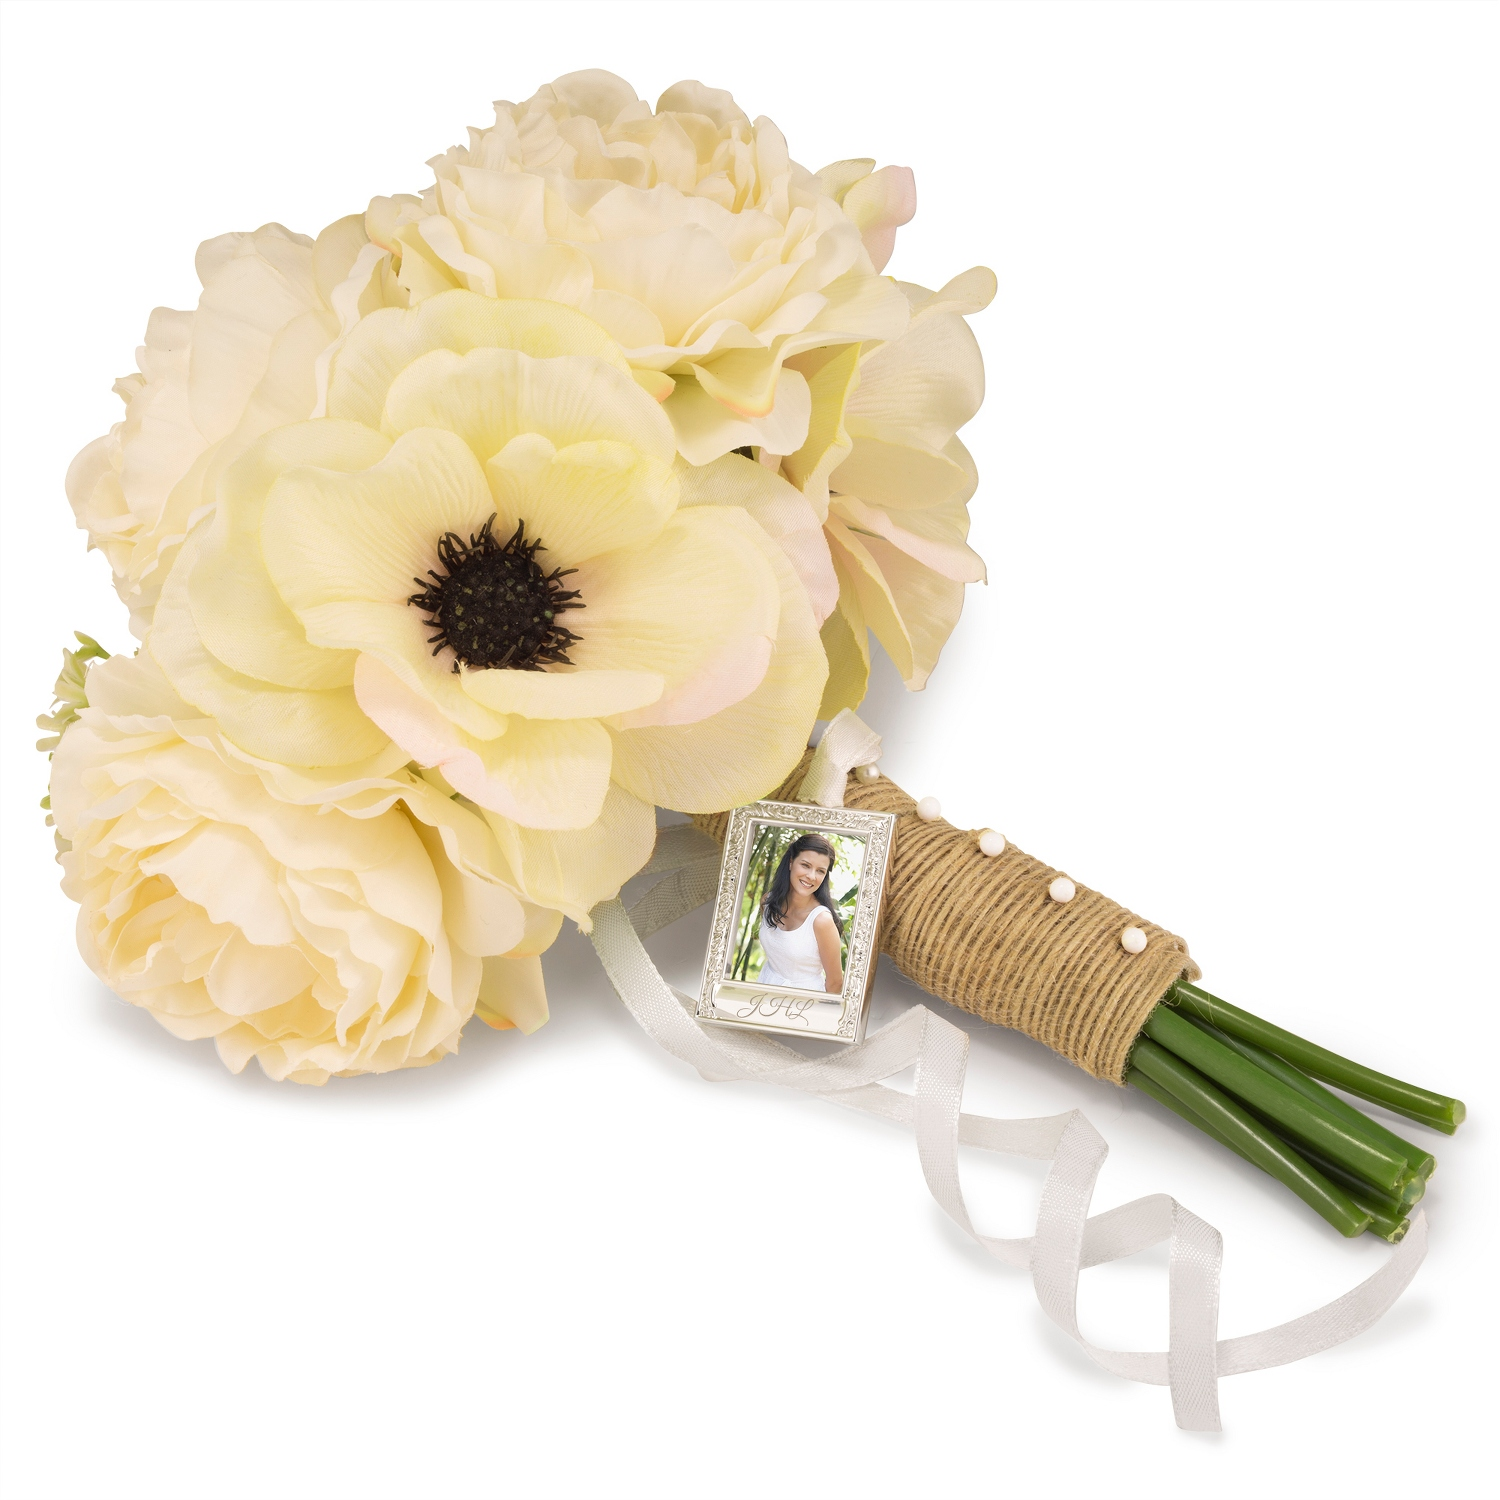 Personalized Wedding Keepsakes At Things Remembered